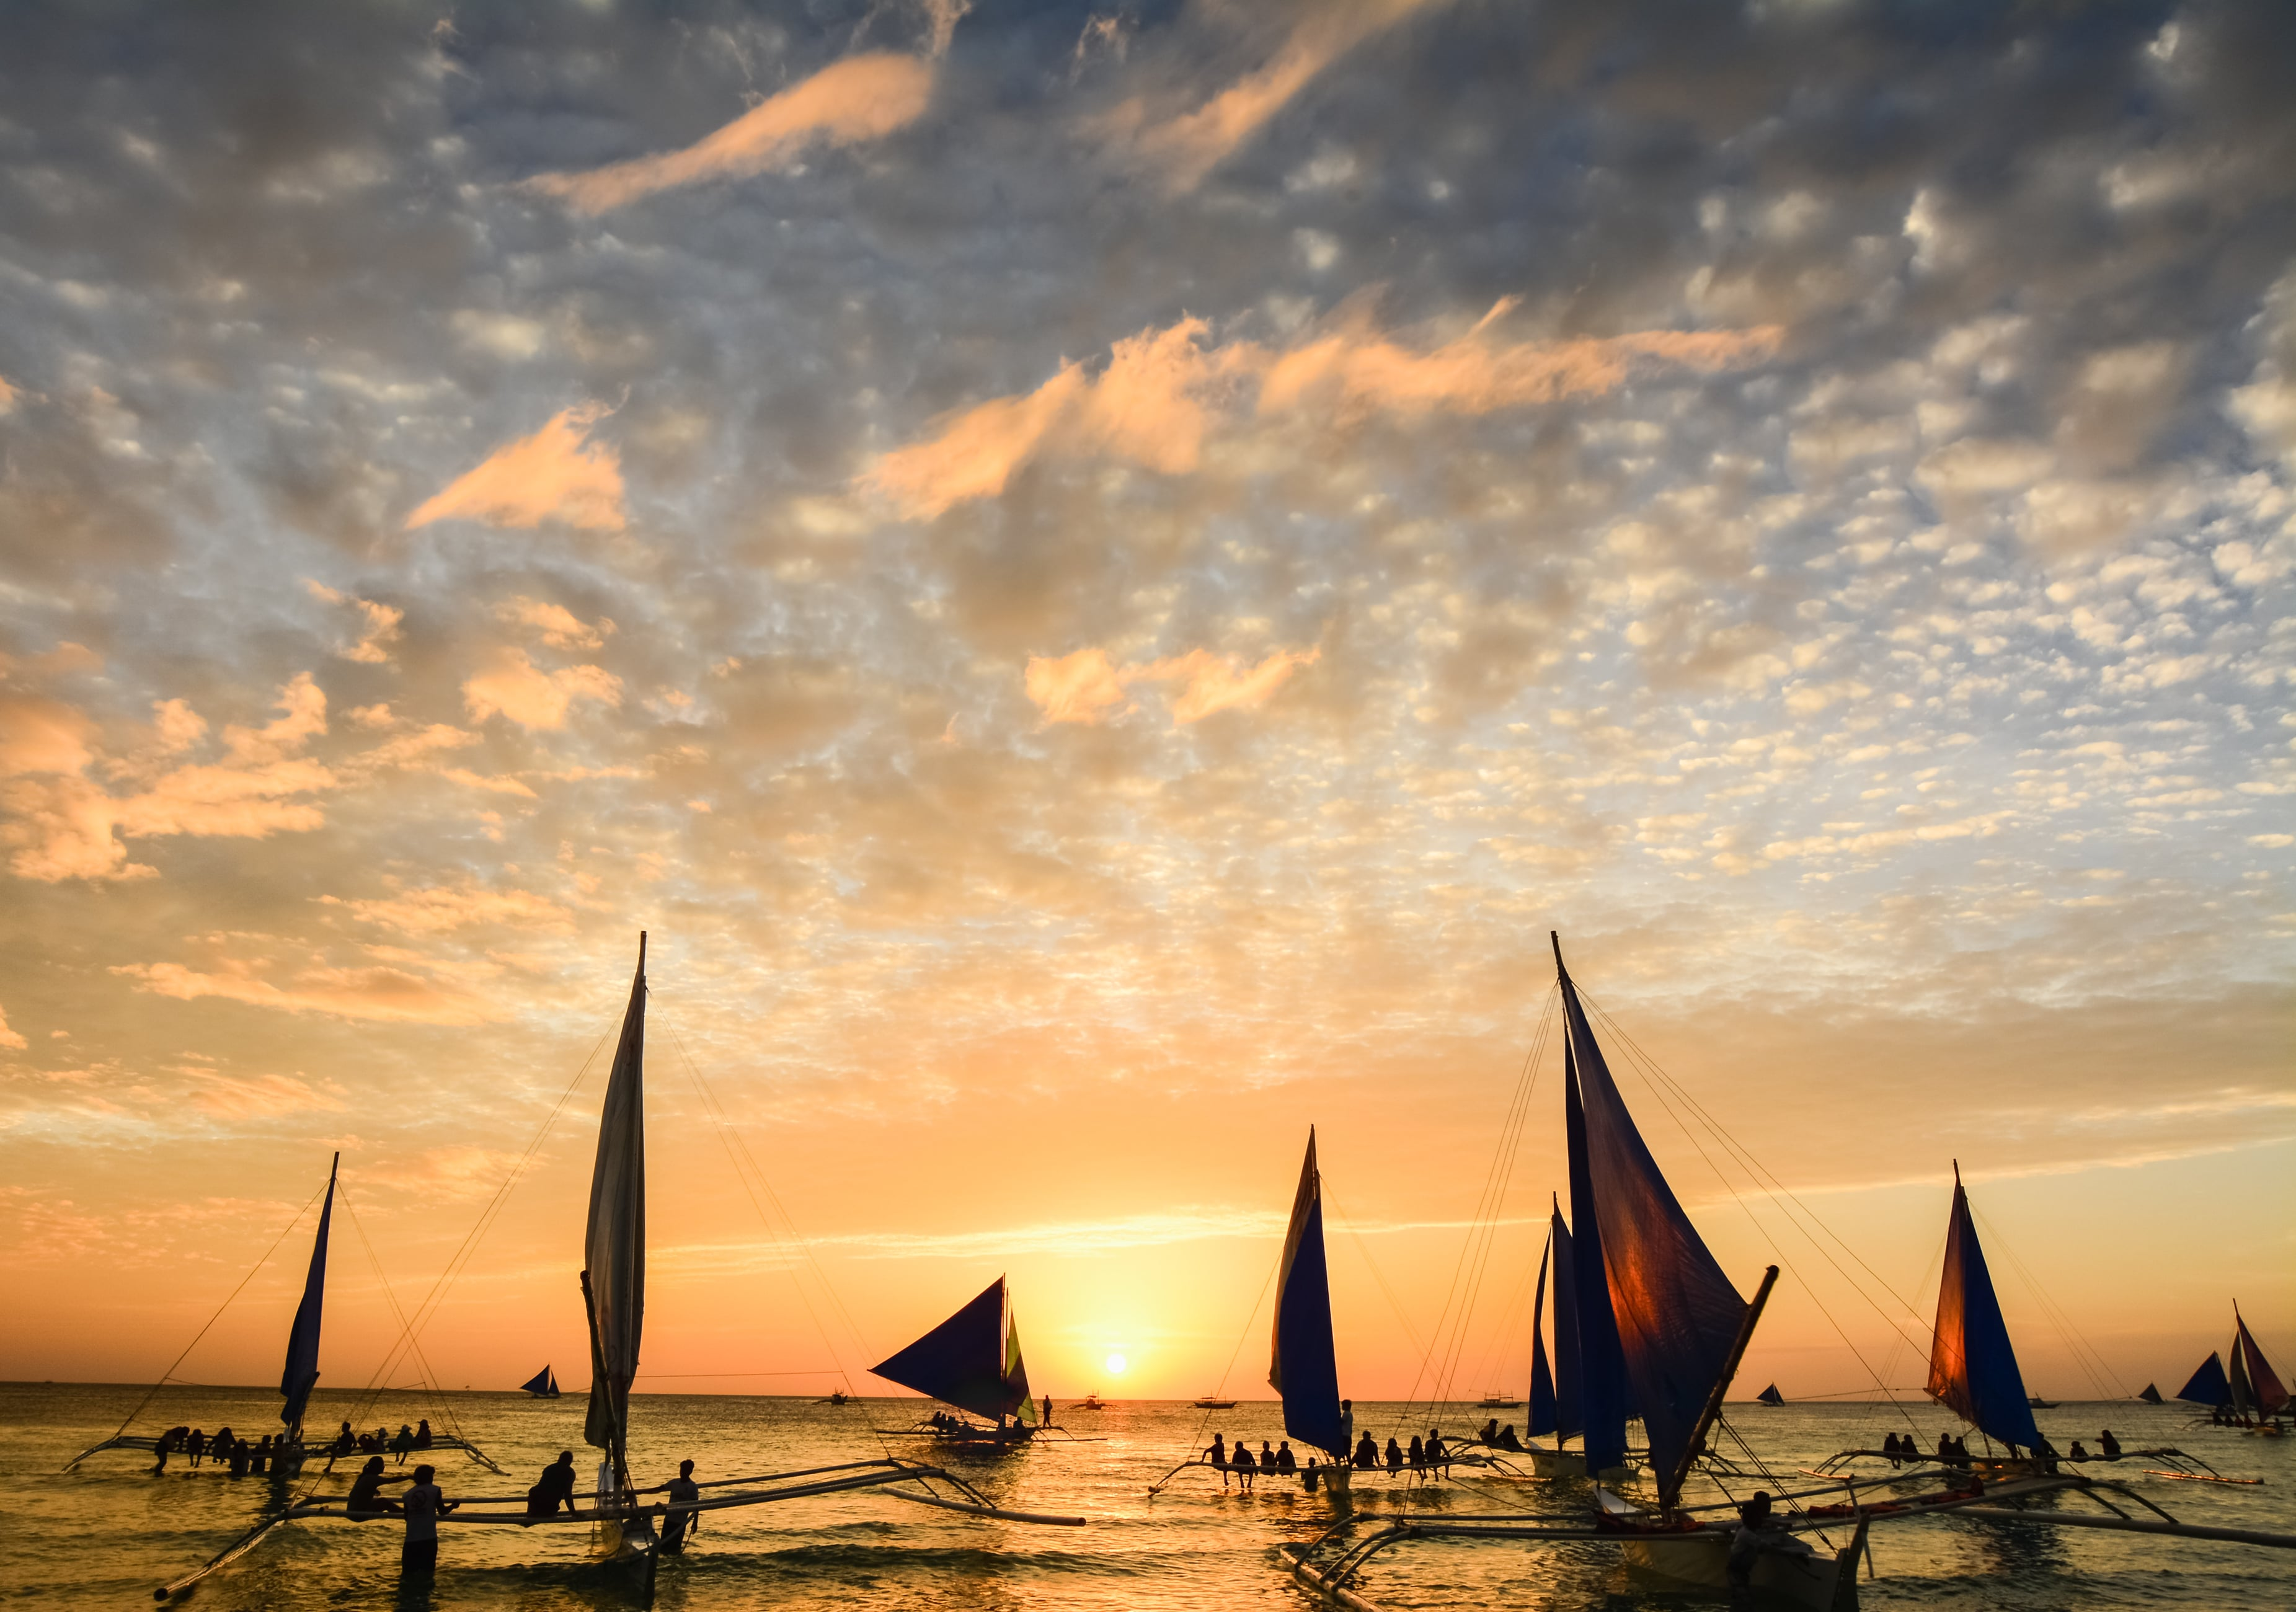 Relaxing paraw sailing during sunset at Boracay